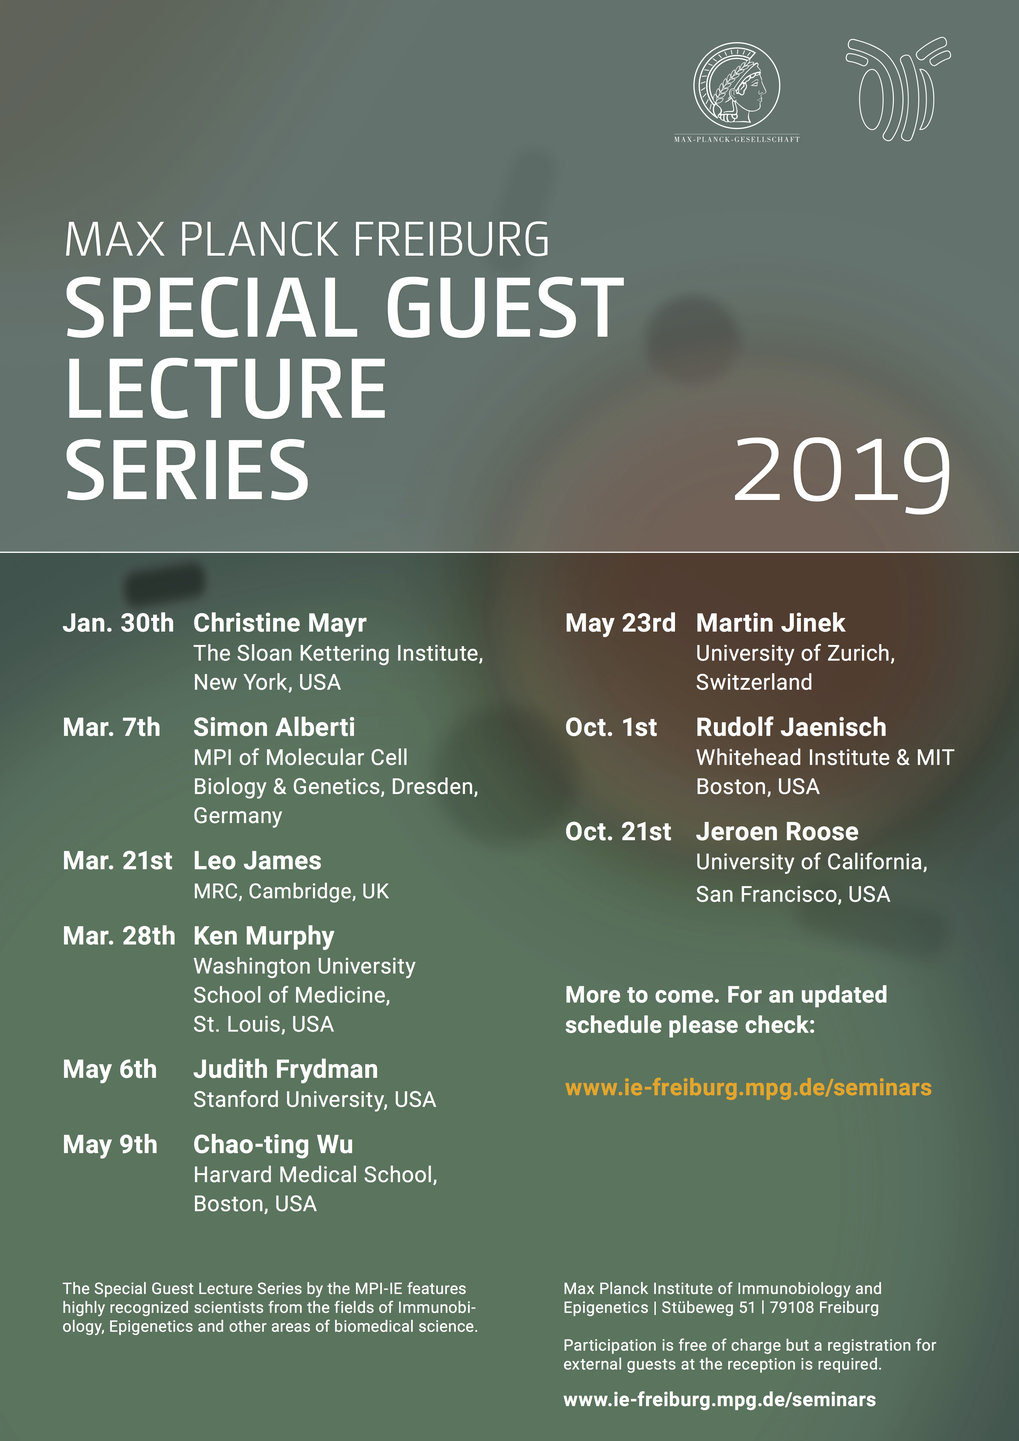 Special Guest Lecture Series 2019